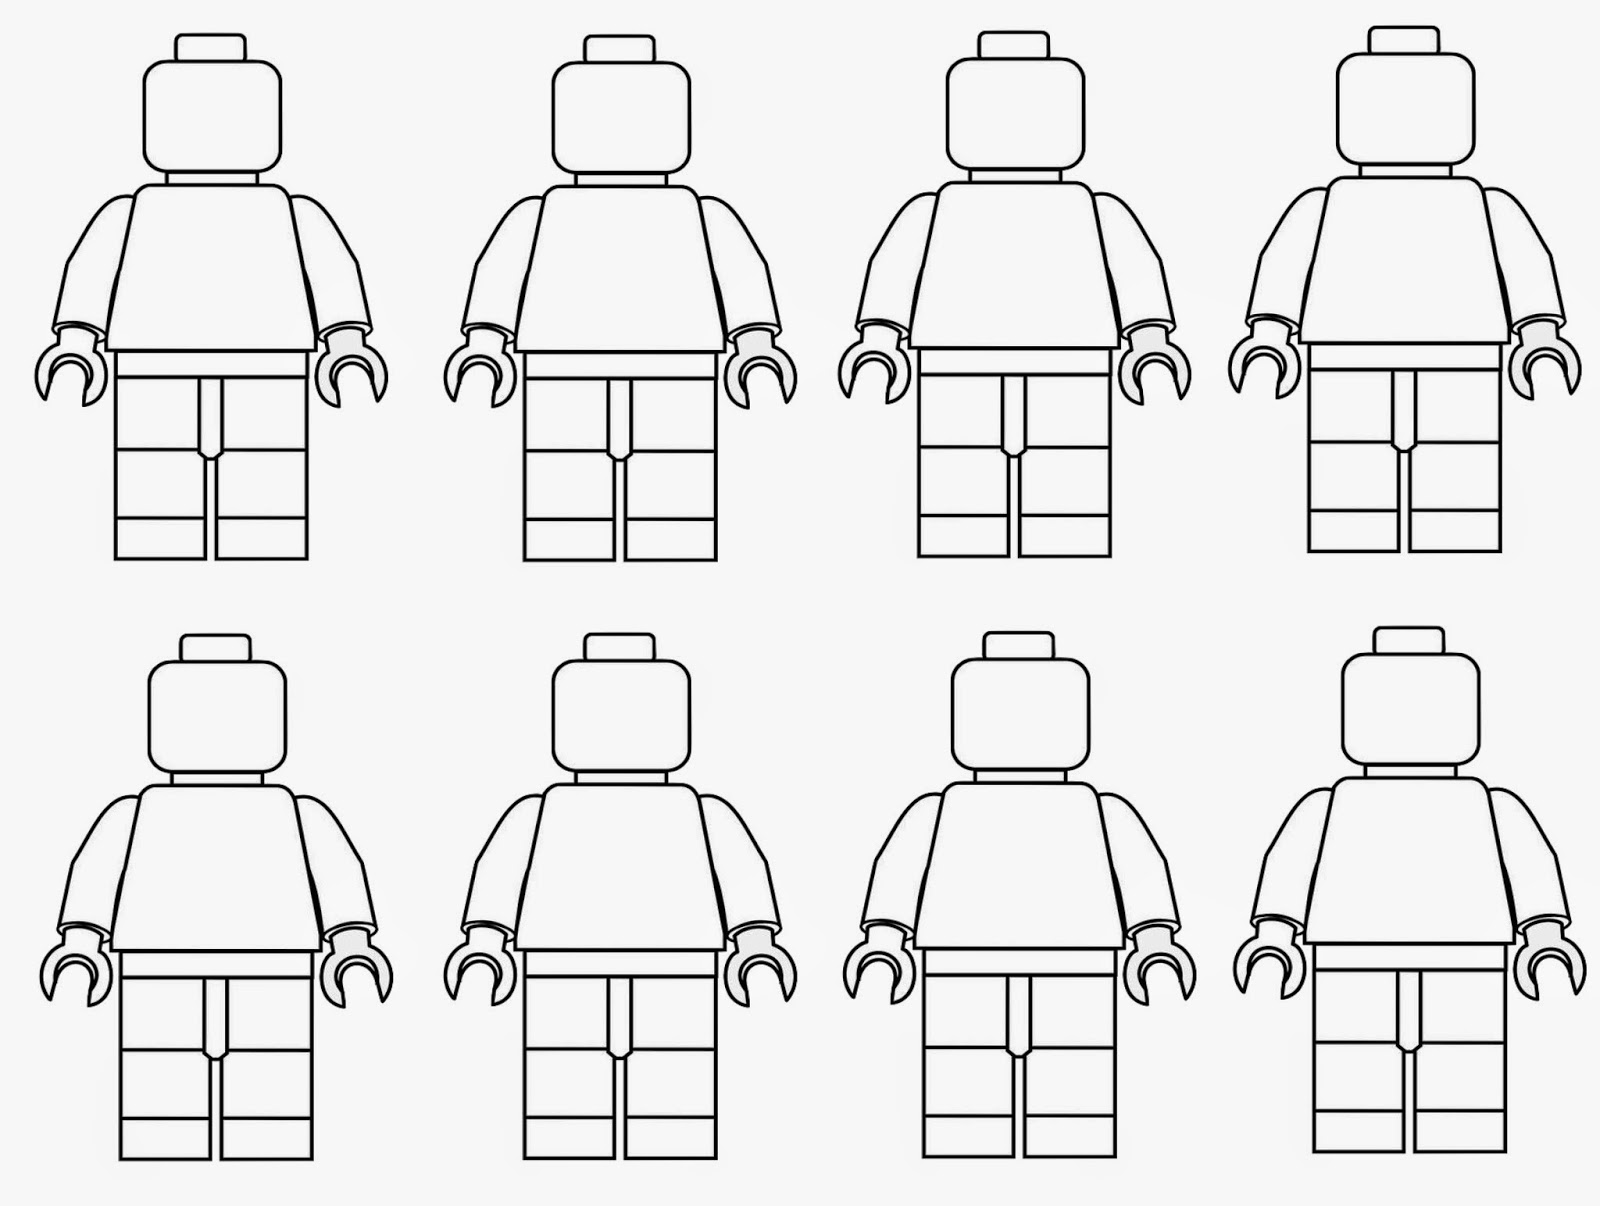 Lego army men coloring pages - Today S Cold Yucky Thank You Idaho Weather Turned Into Hours Of Coloring Awesome Lego Men They Plan On Cutting Them Out Into Paper Puppets And Taping To